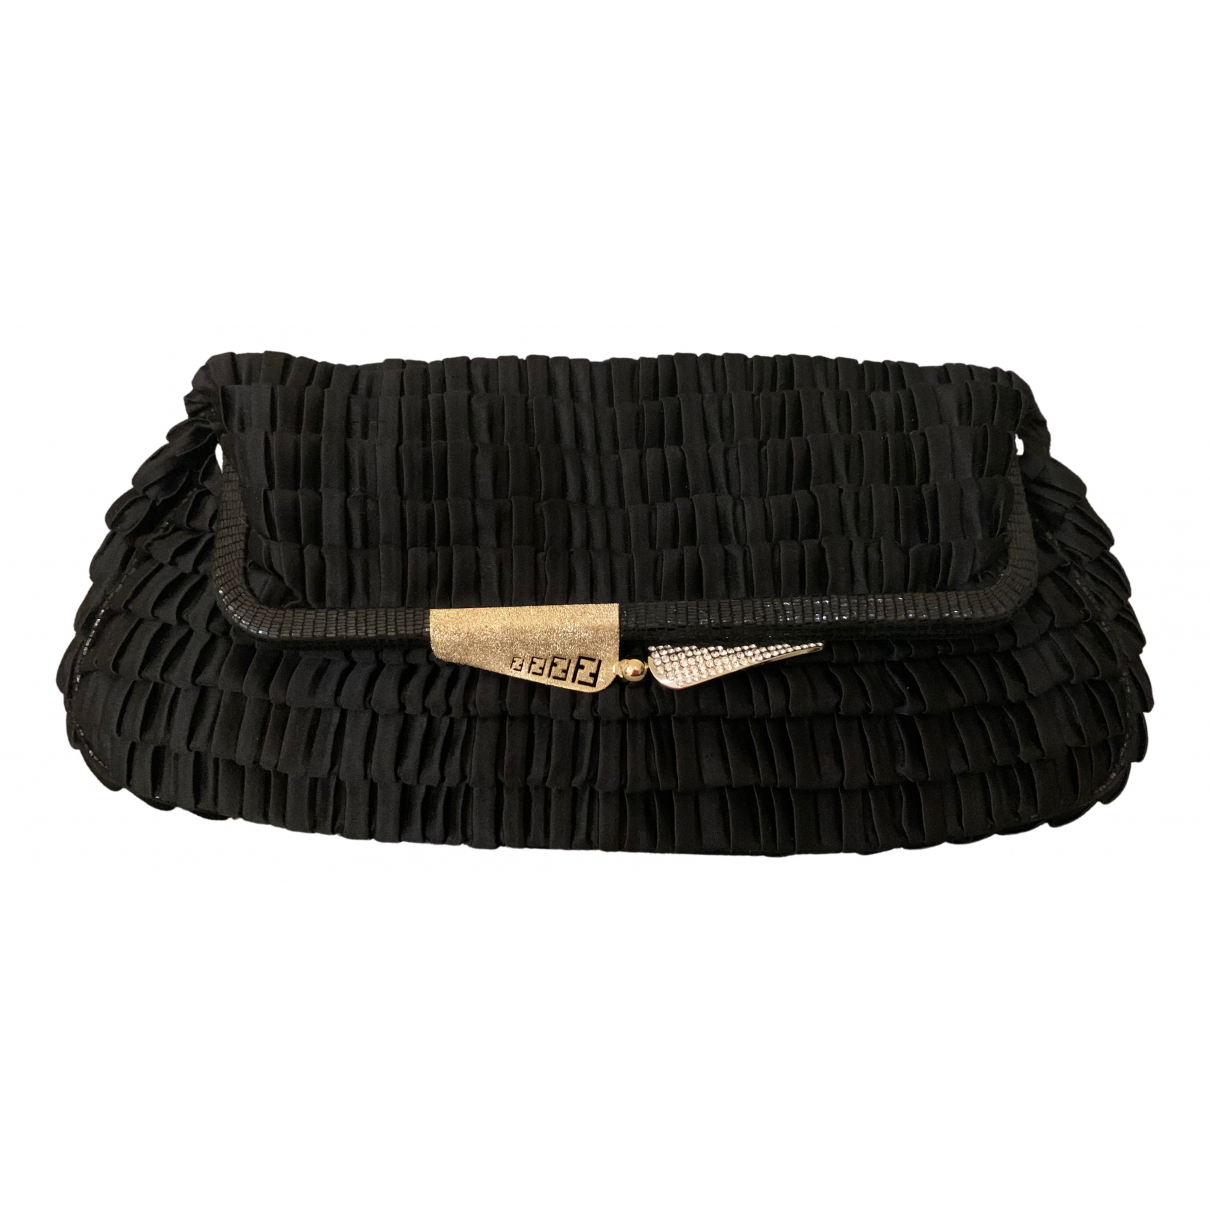 Fendi N Black Silk Clutch bag for Women N